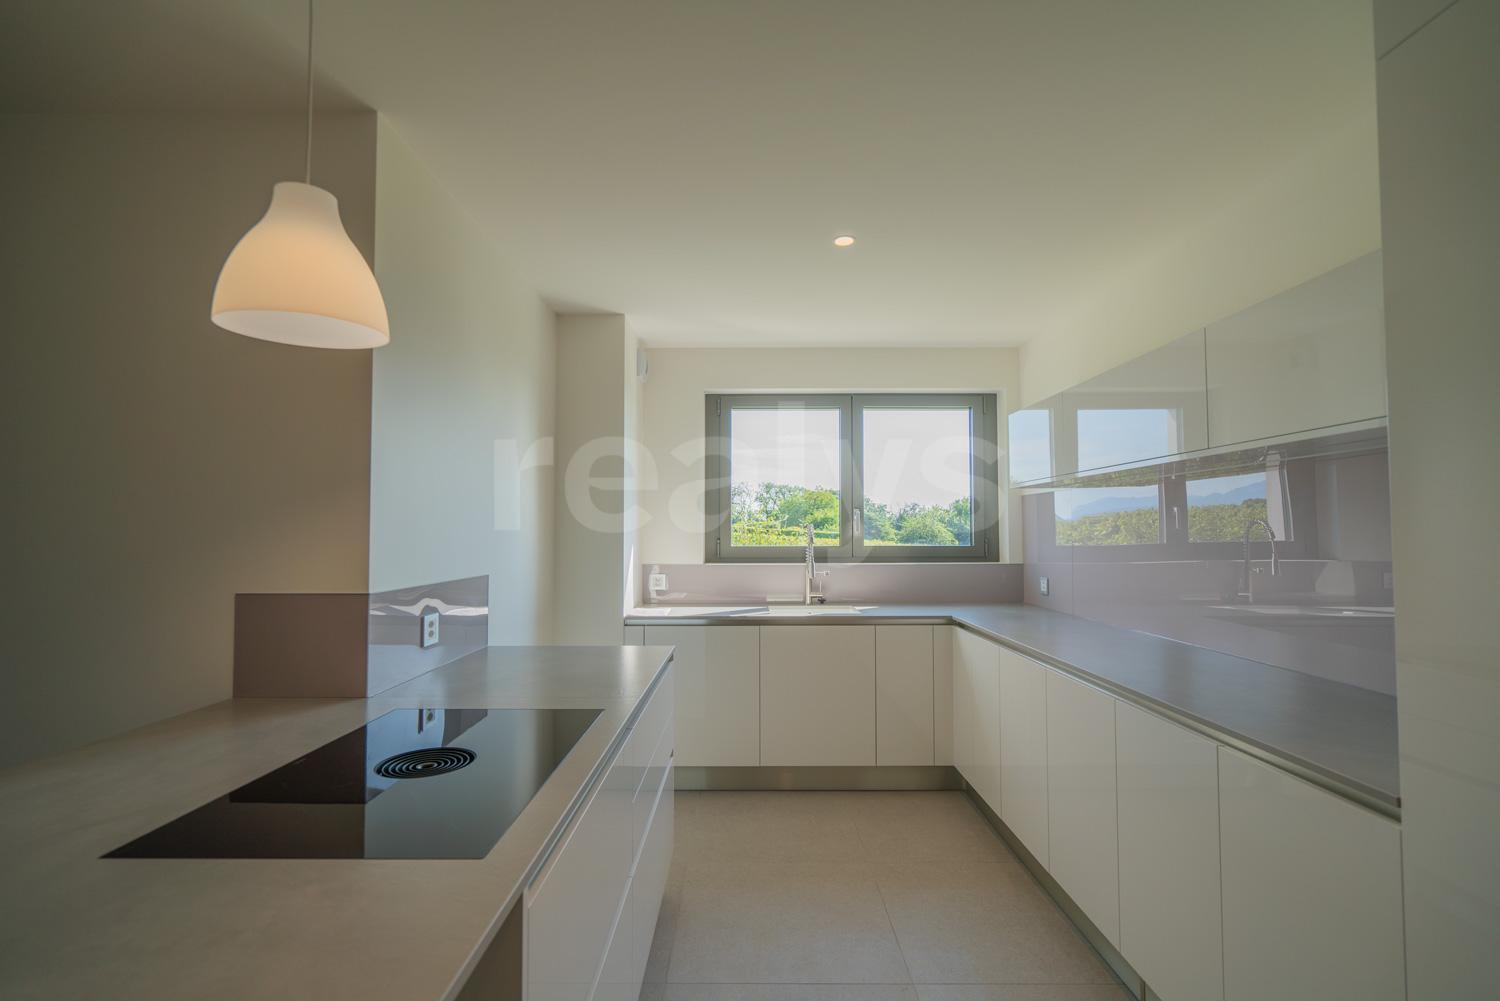 Privalia5-room flat in a new high-end residence